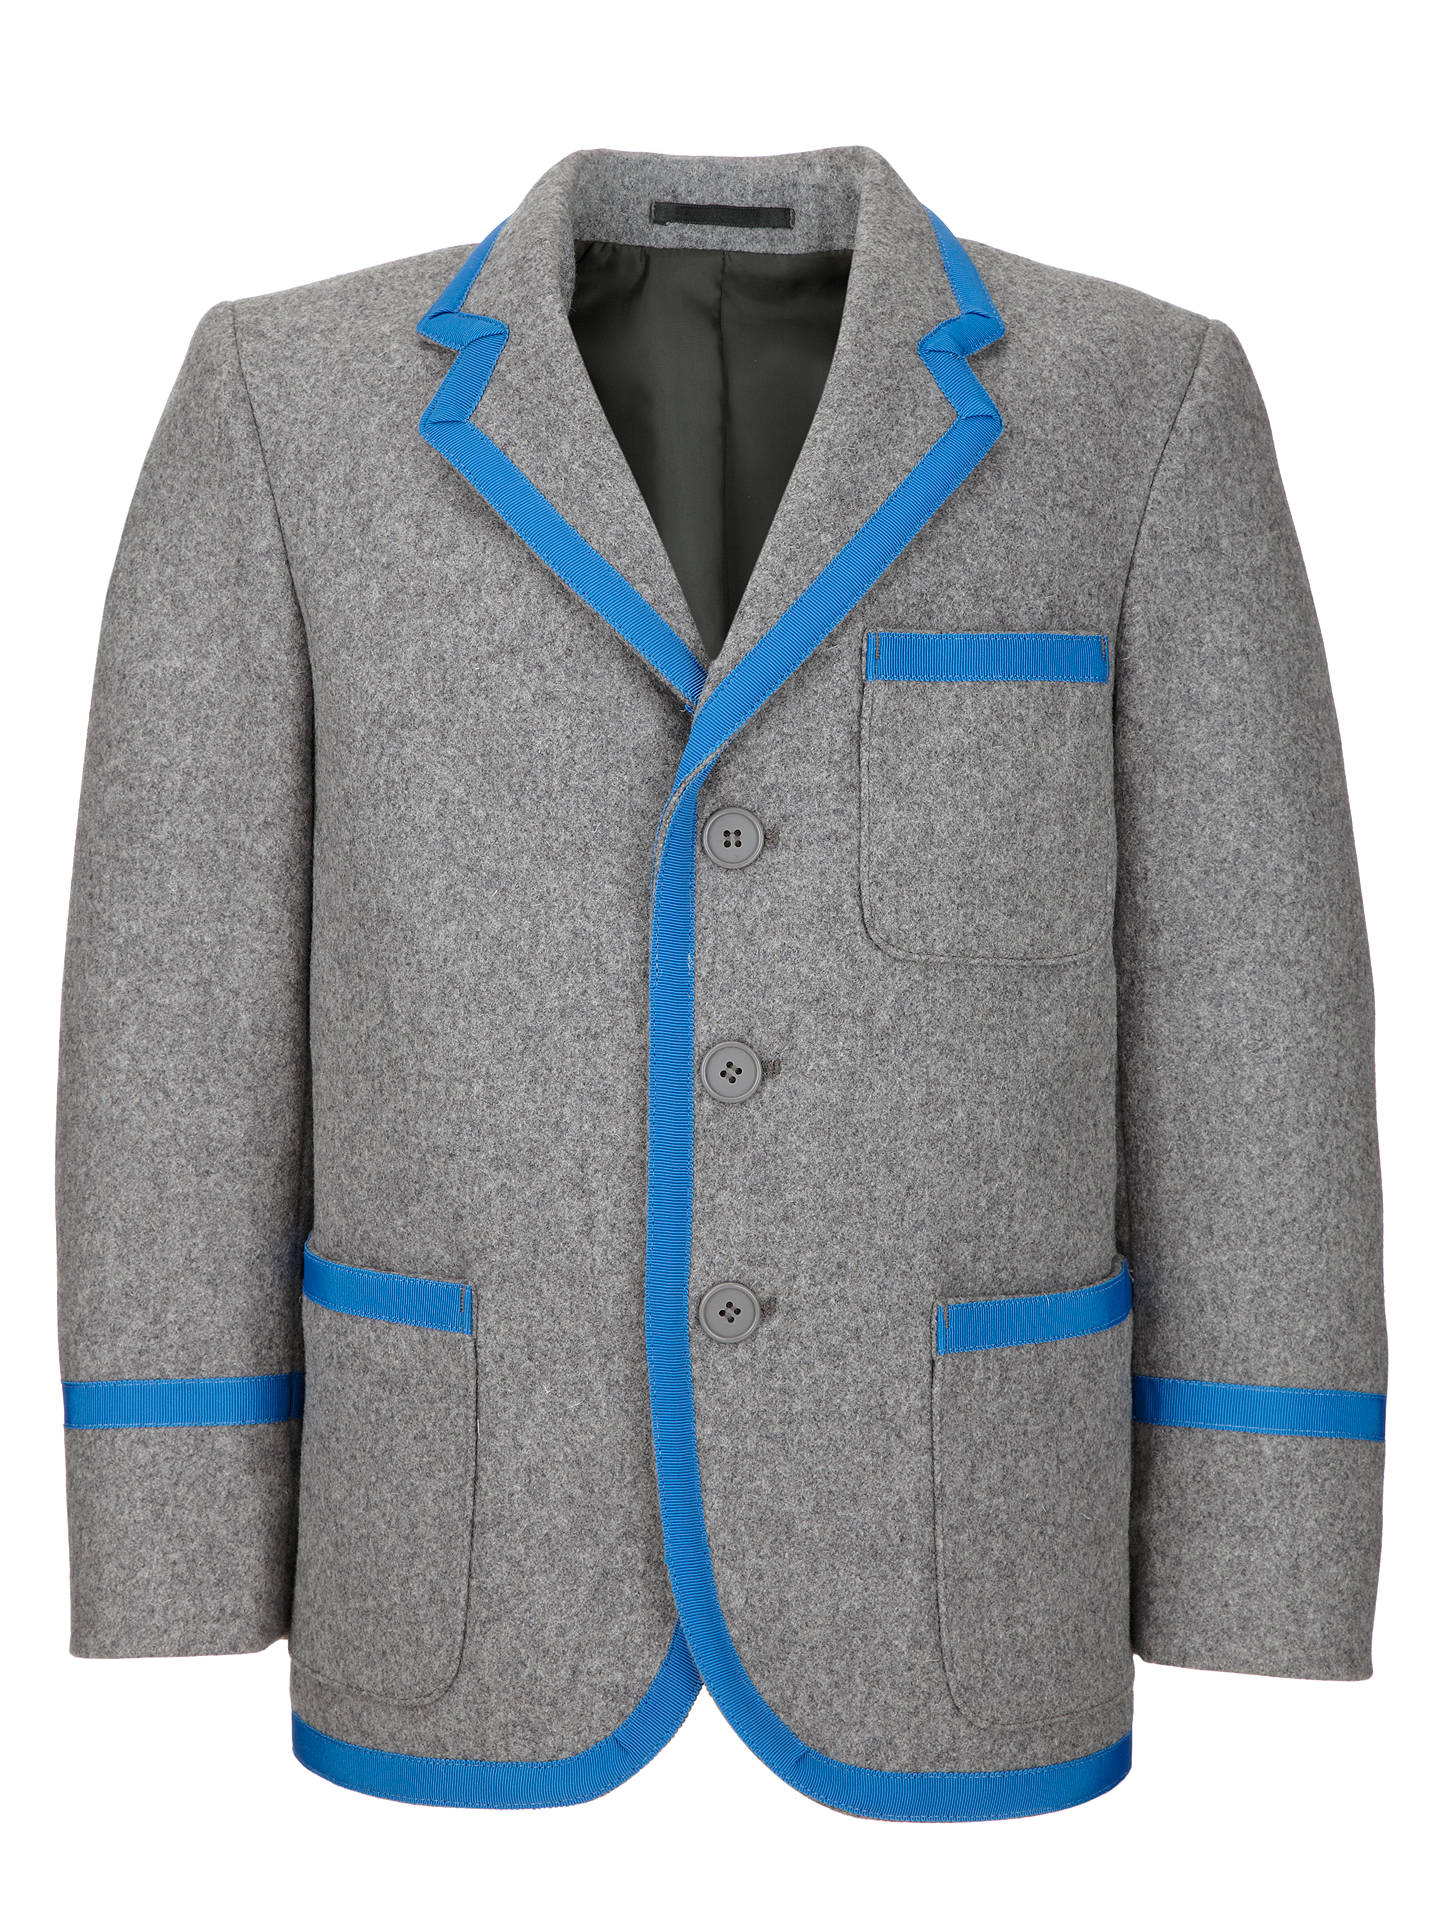 BuyUnisex School Blazer, Grey, Chest 28 Online at johnlewis.com